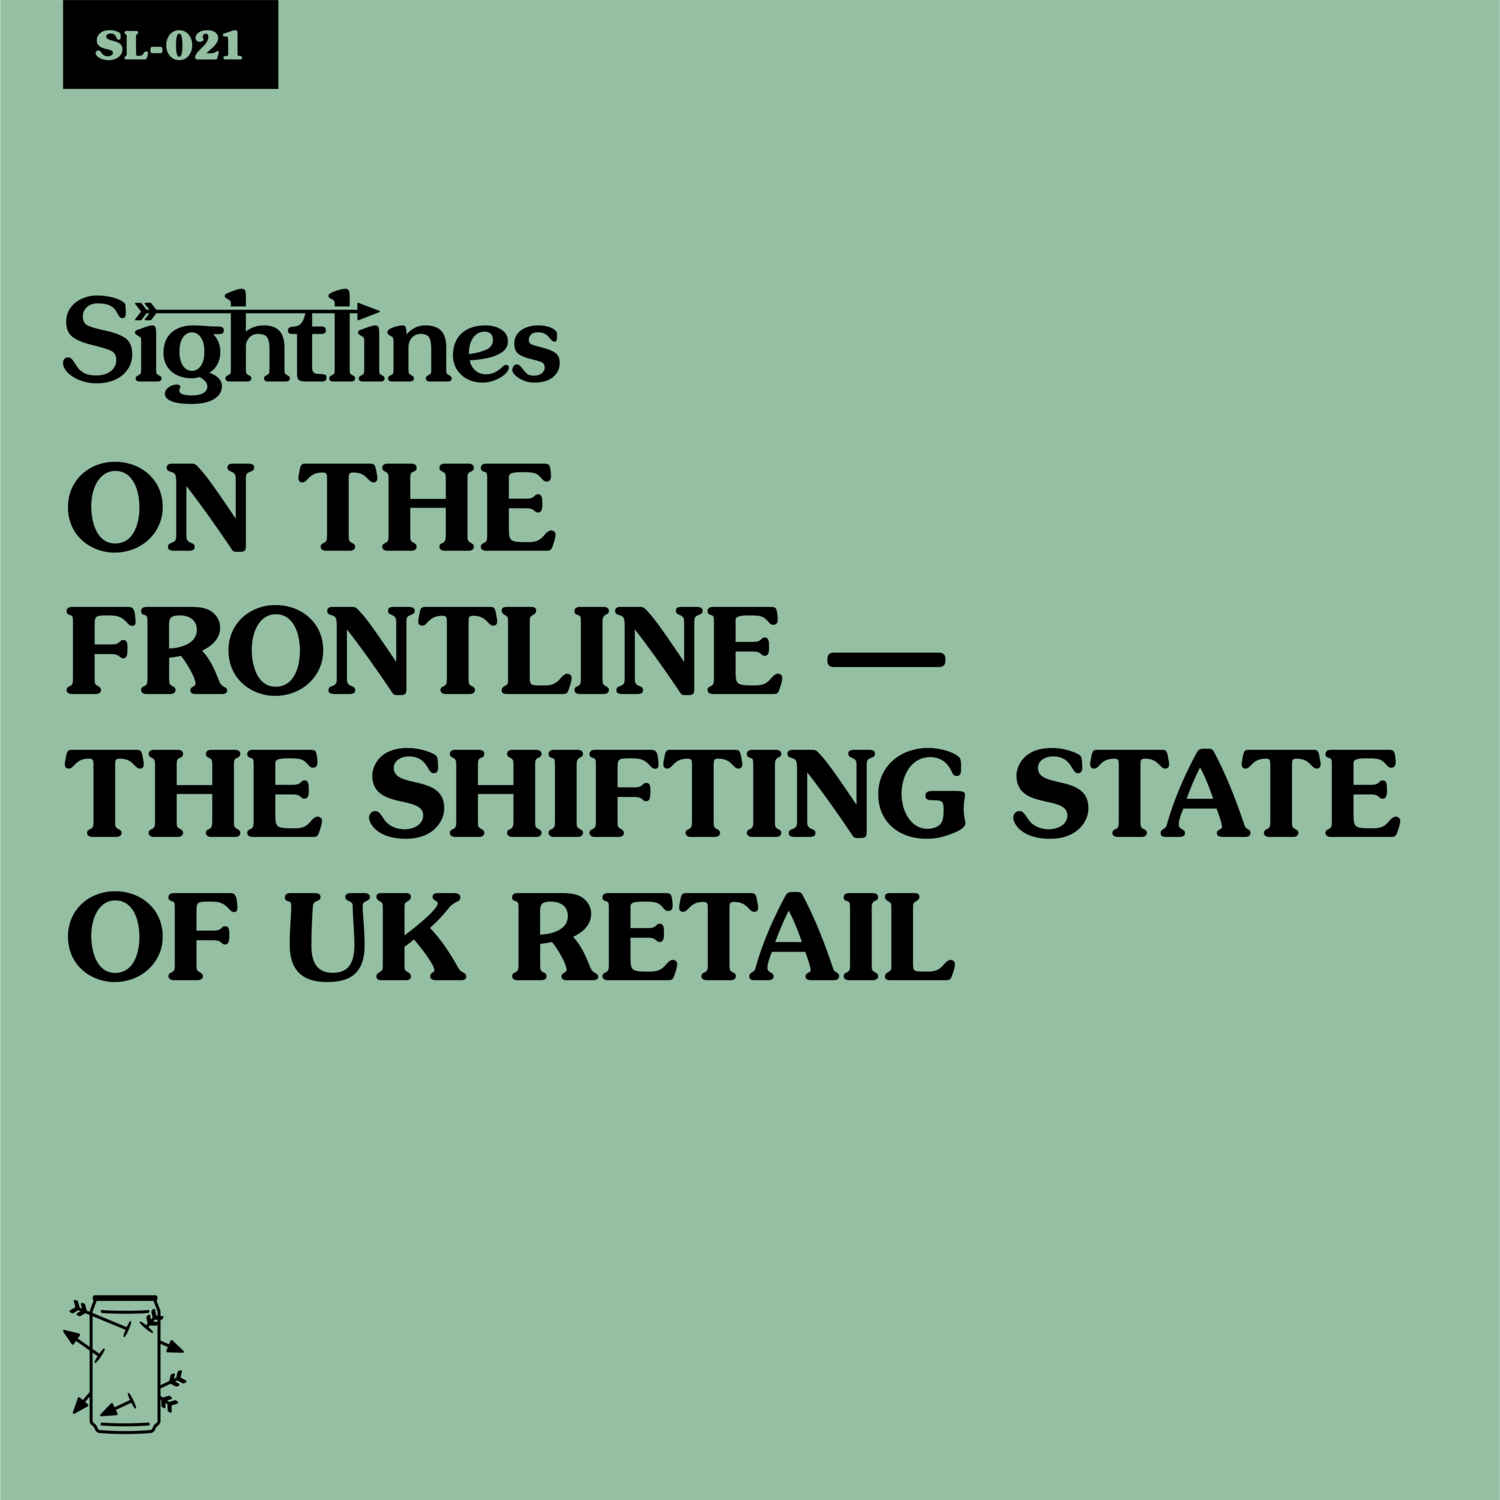 SL-021 On the Frontline — The Shifting State of U.K. Retail